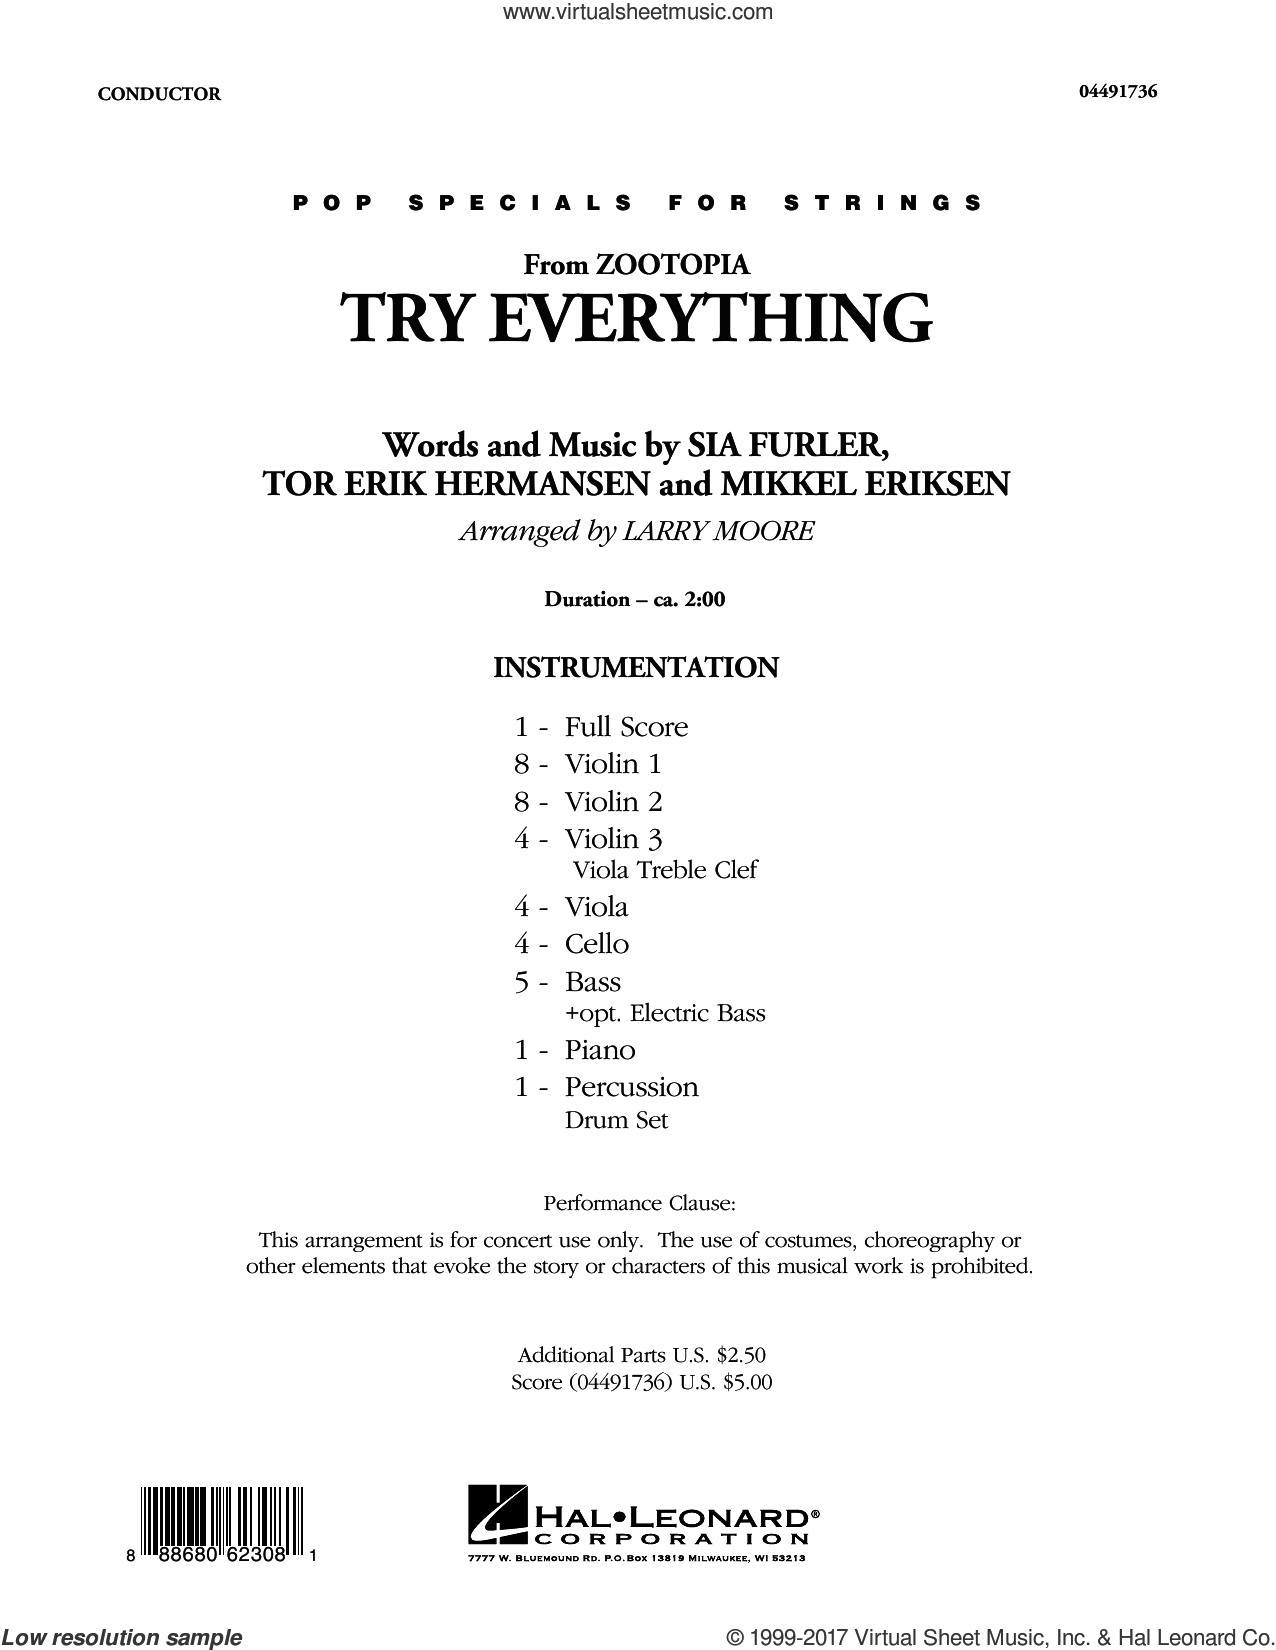 Try Everything (from Zootopia) (COMPLETE) sheet music for orchestra by Larry Moore, Mikkel Eriksen, Shakira, Sia Furler and Tor Erik Hermansen, intermediate skill level